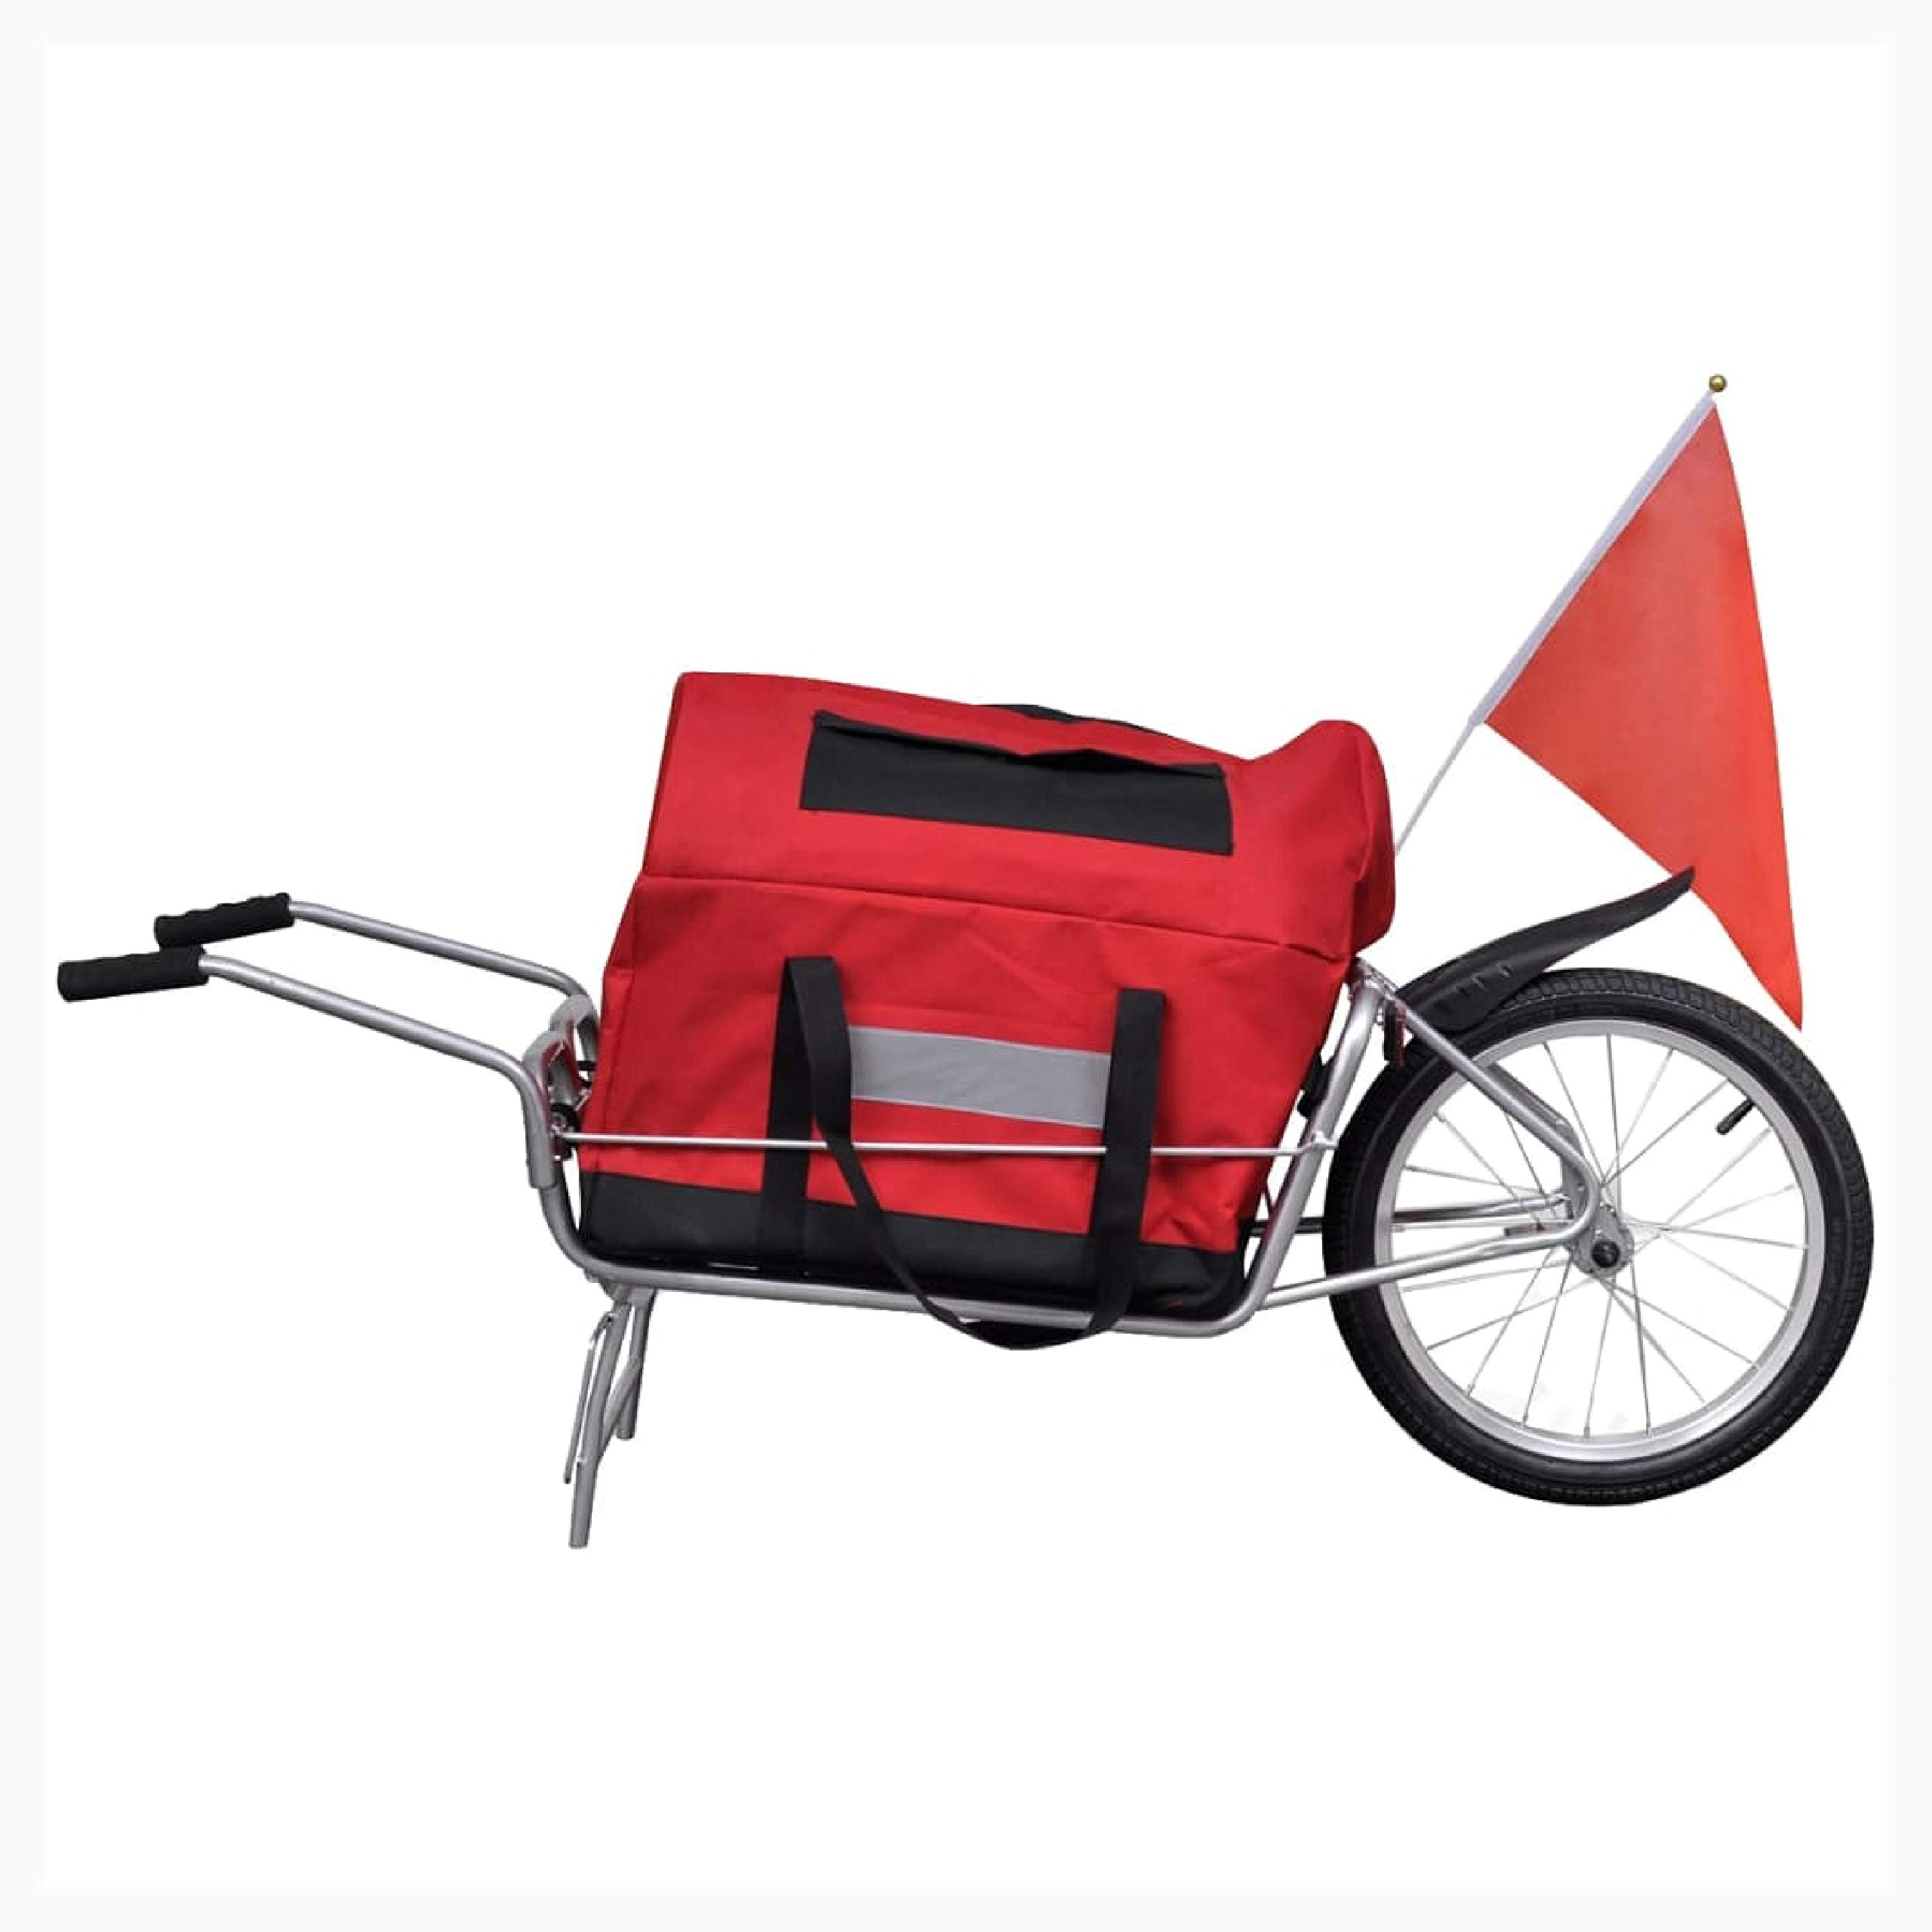 K&A Company Bicycle Trailer One-wheel with Storage Bag by K&A Company